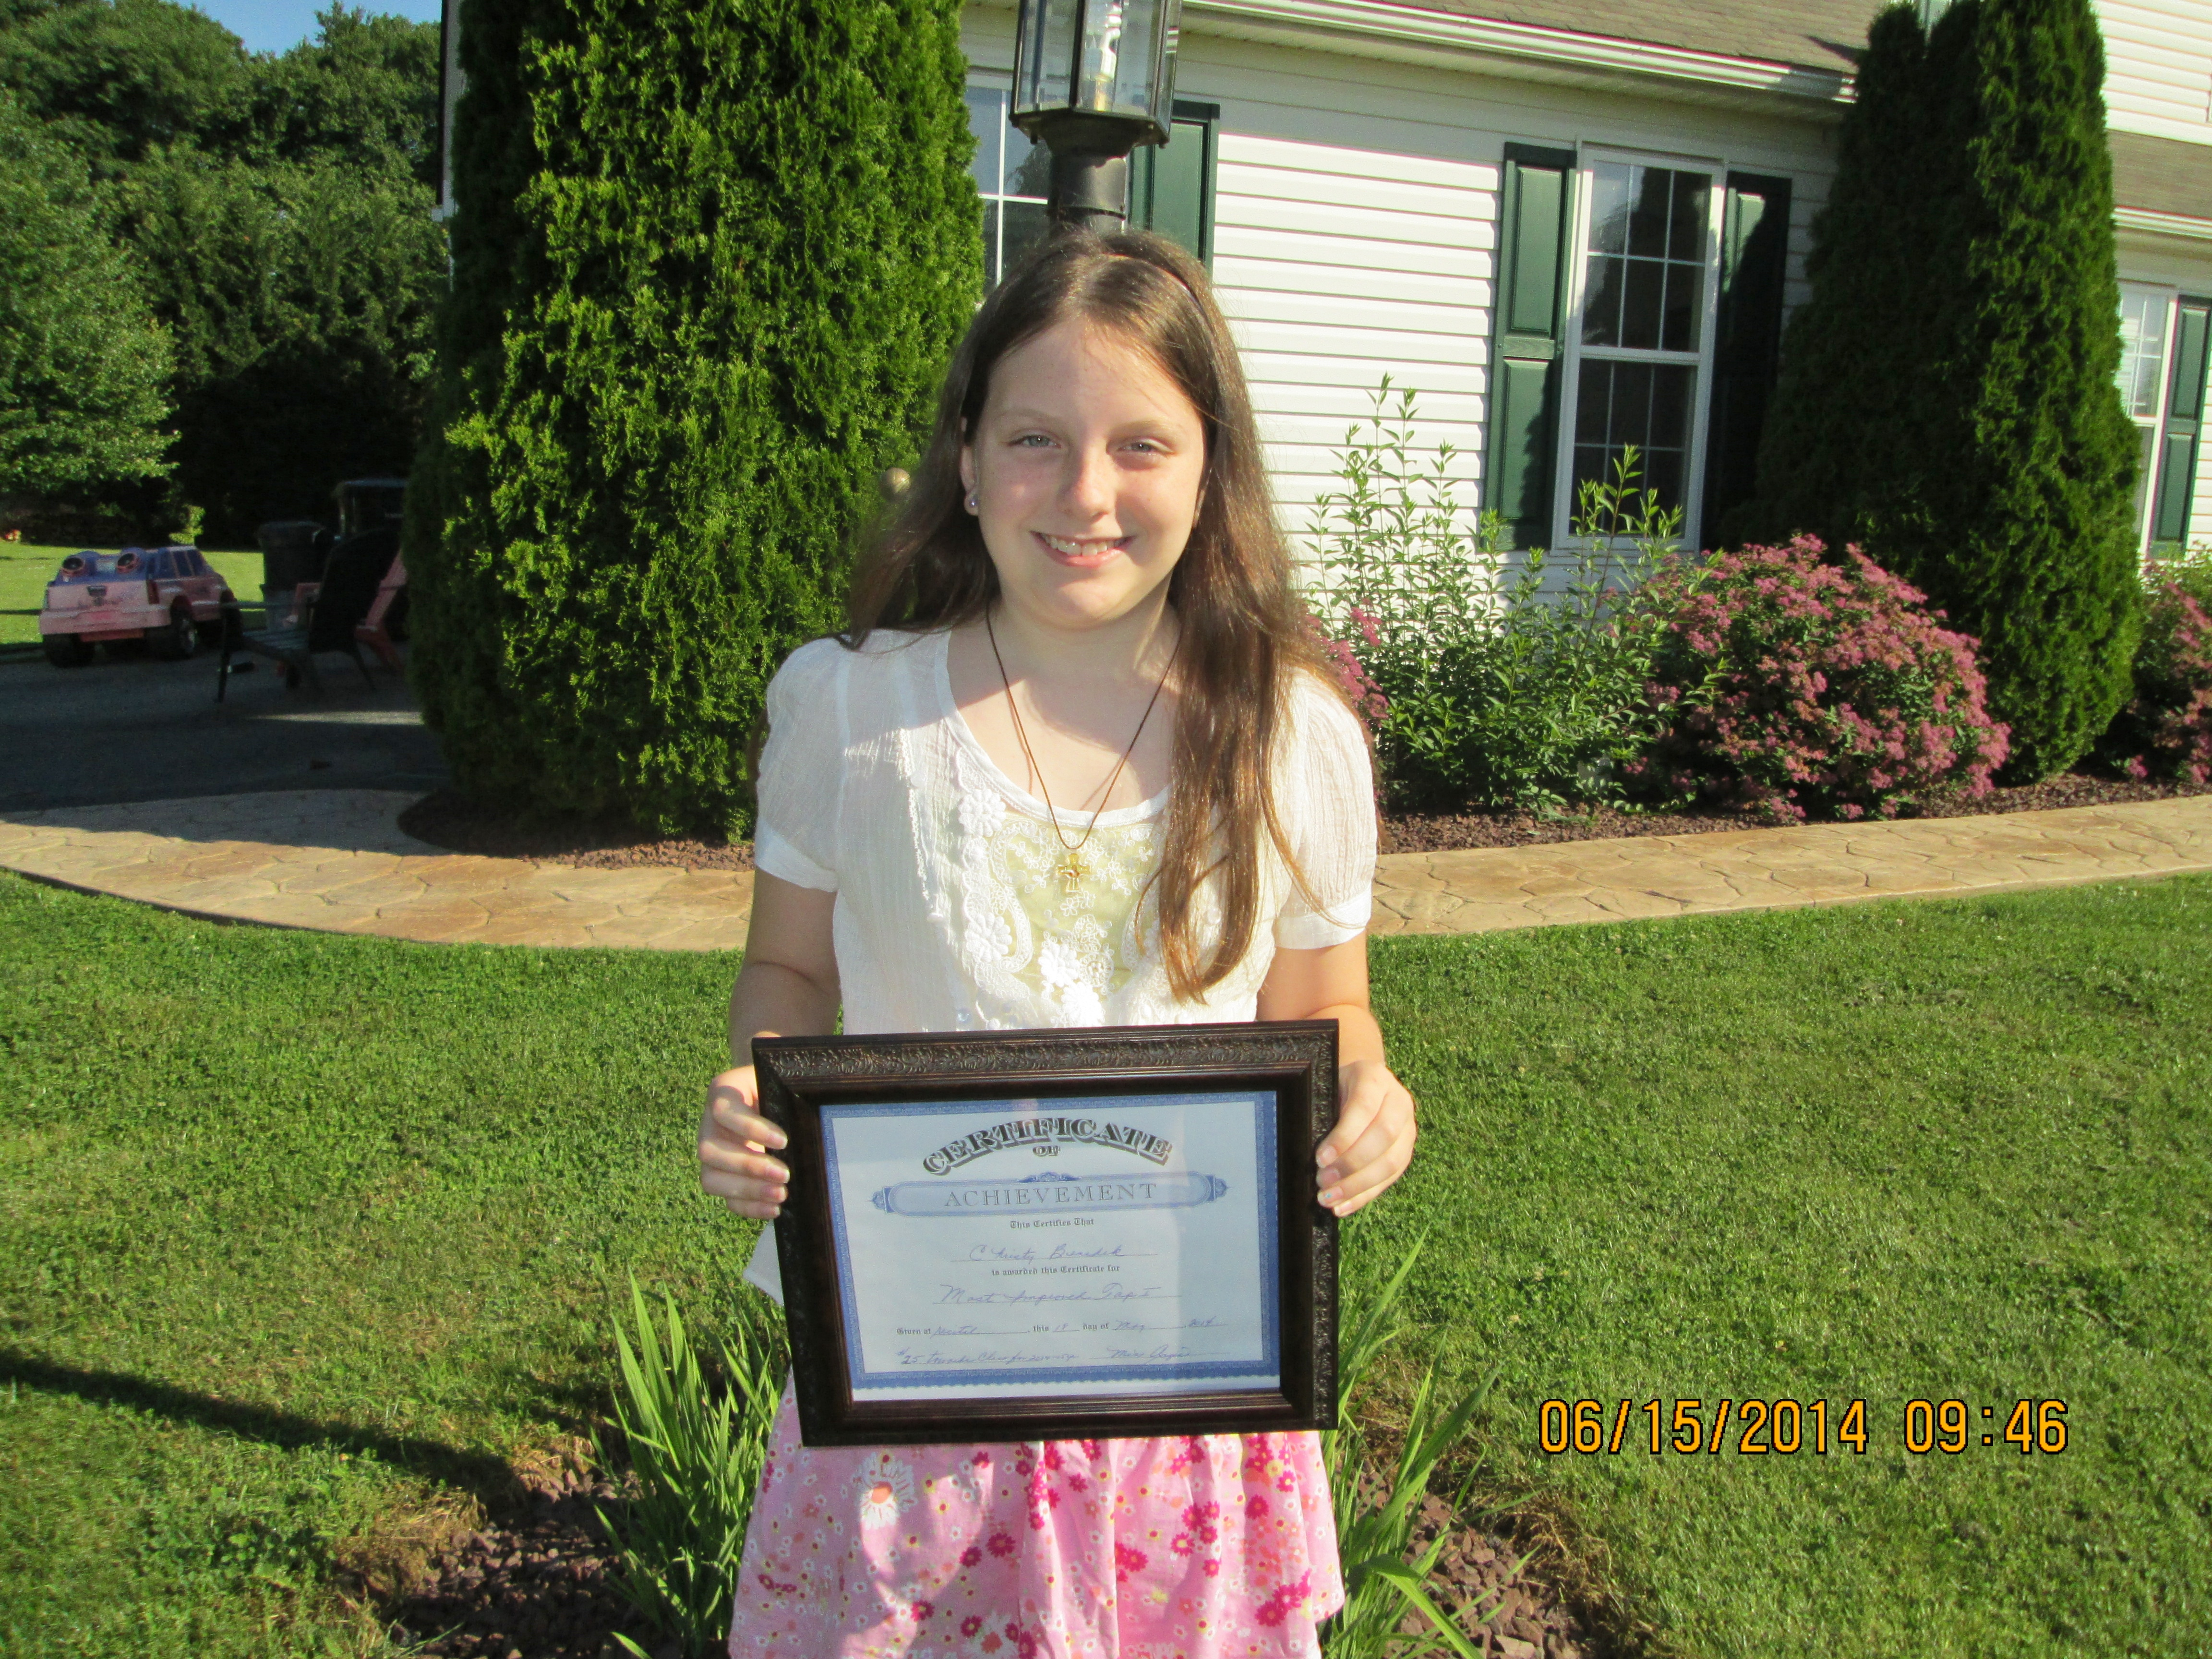 Christy Wins Award At Dance School